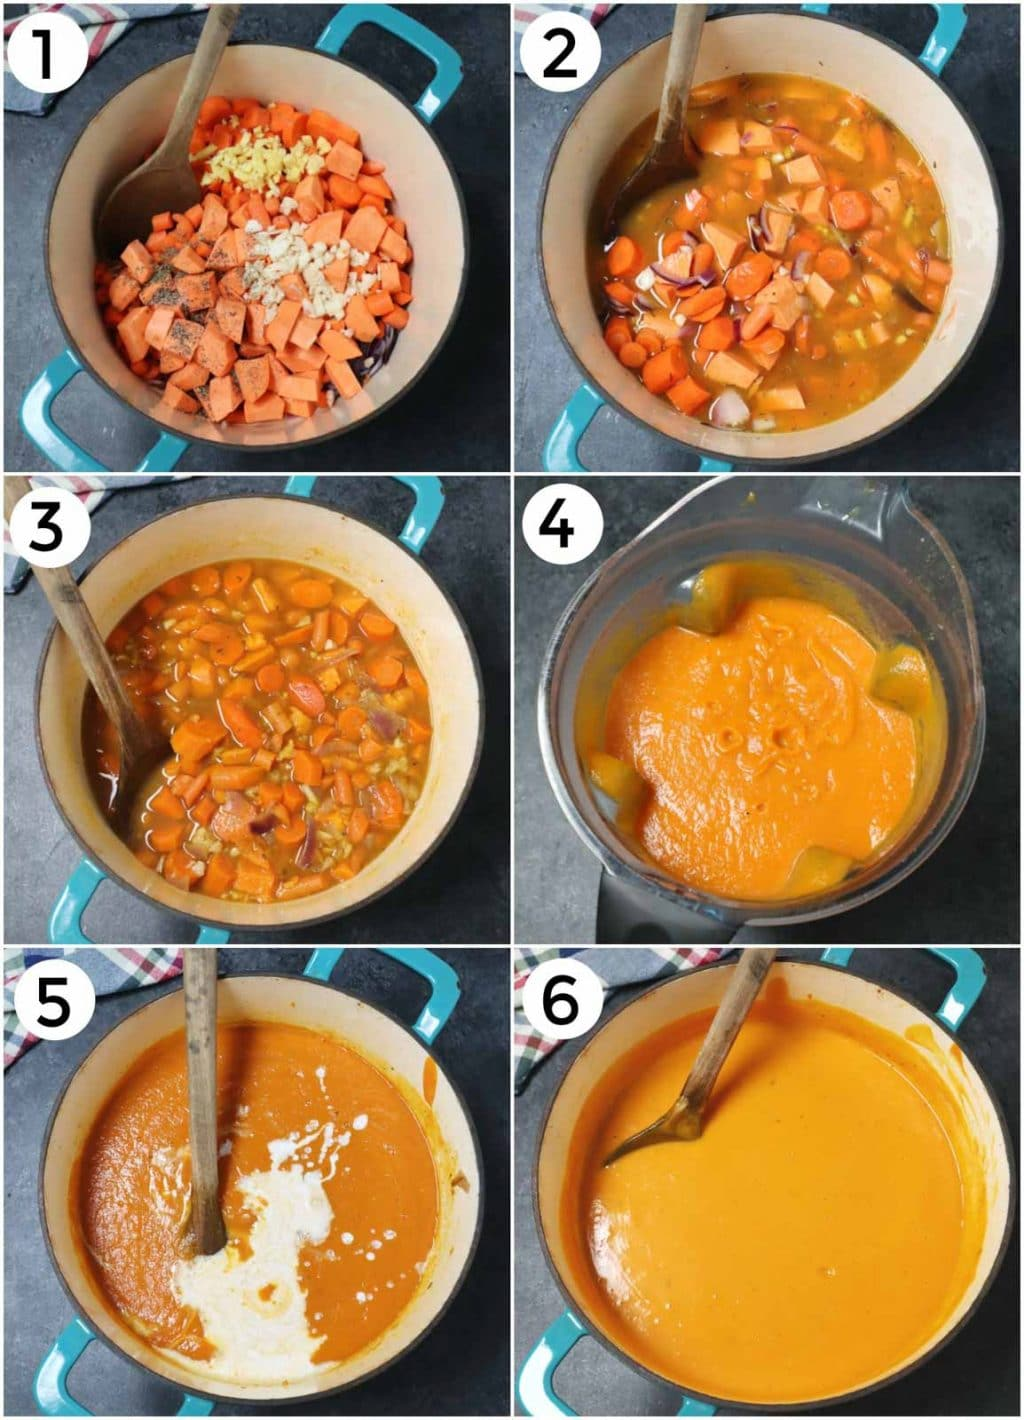 A photo collage showing how to make carrot ginger soup in a few easy steps.